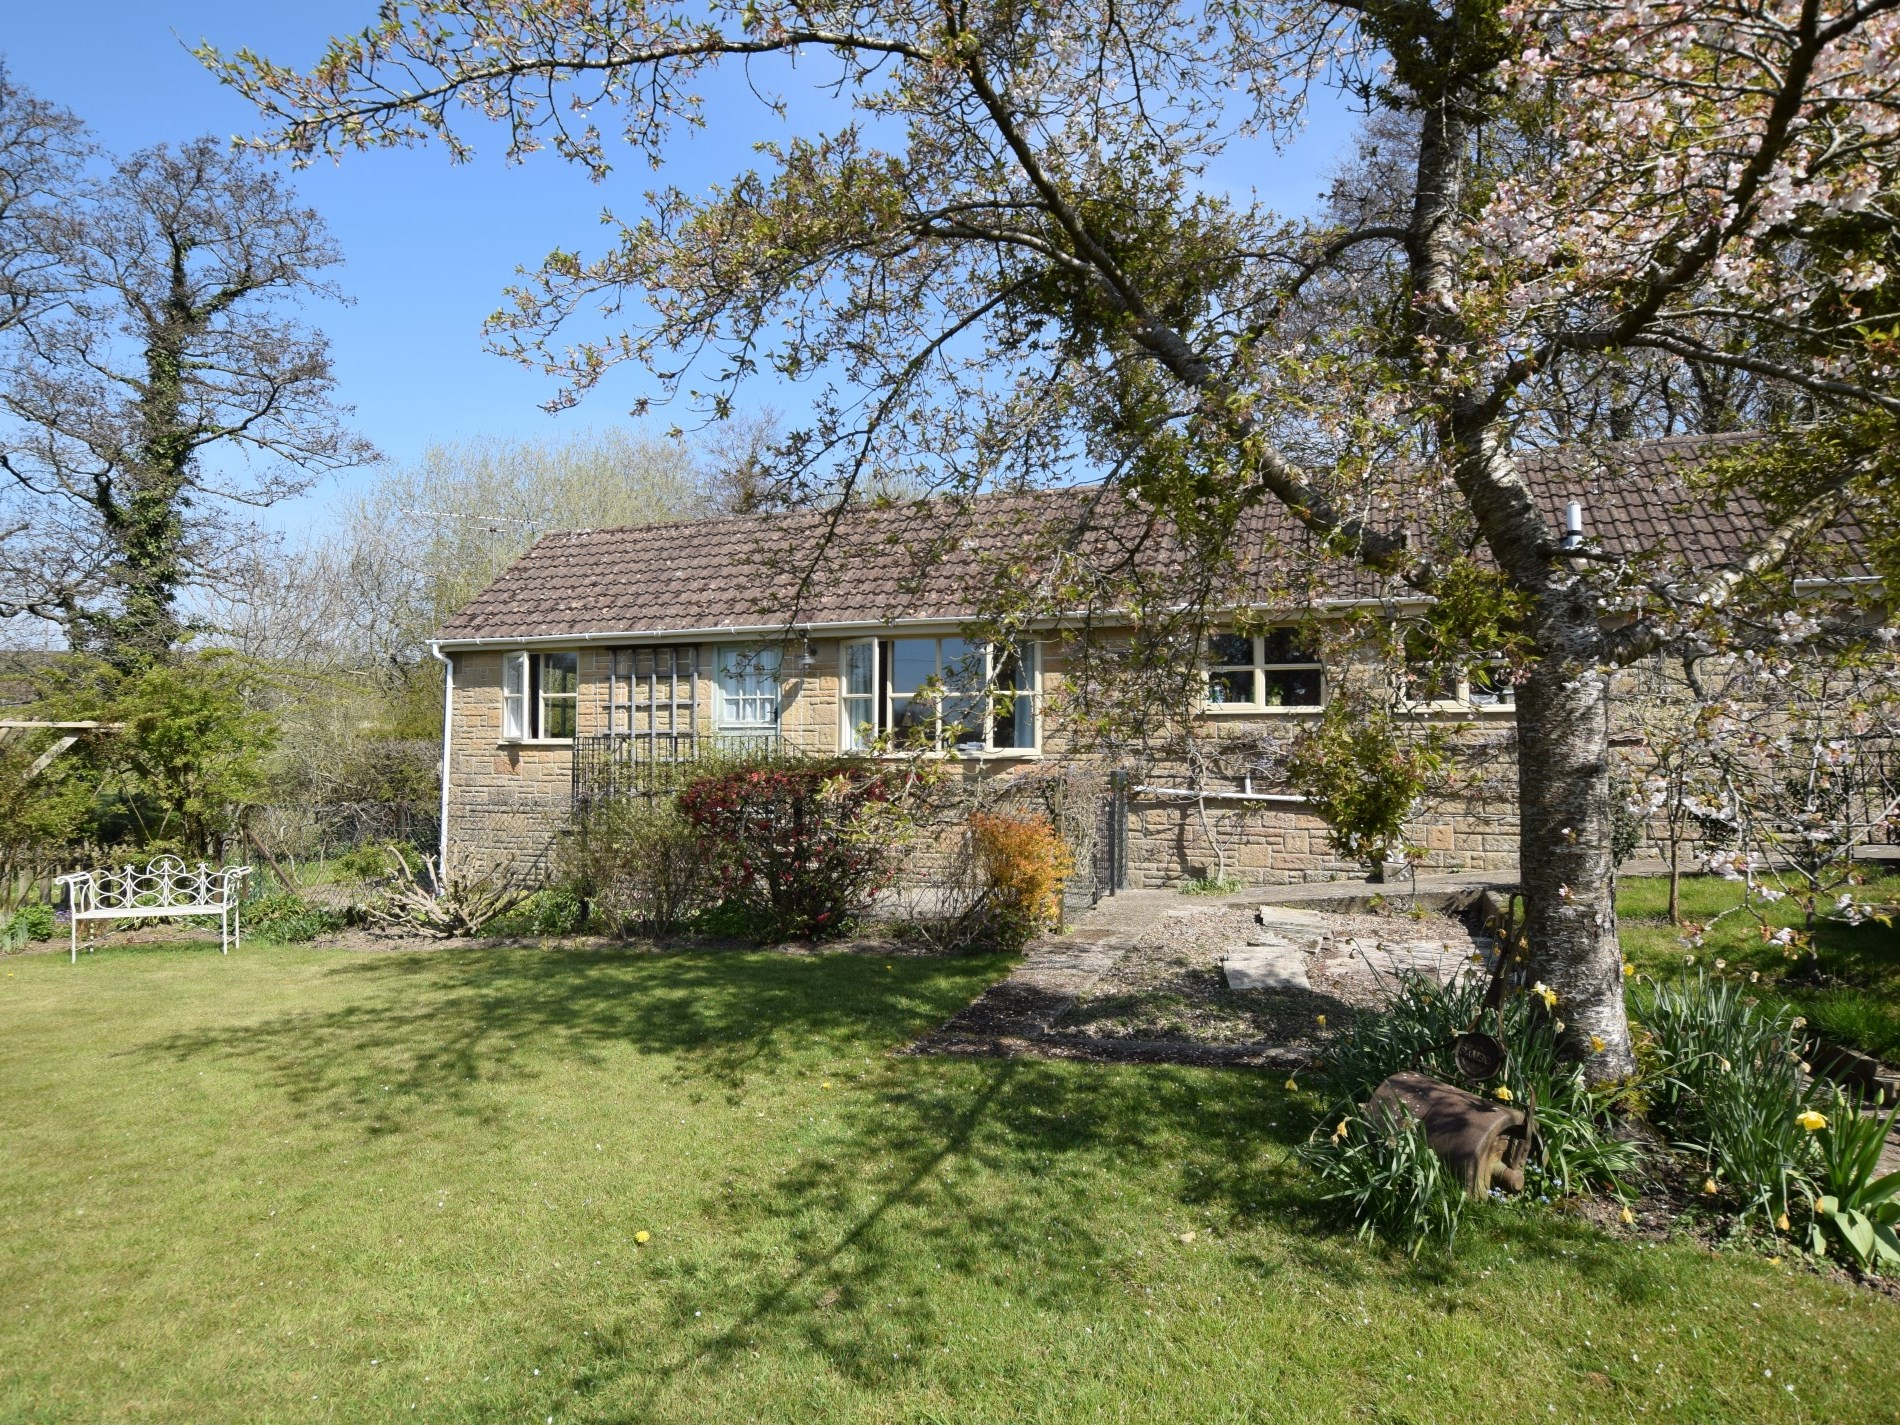 1 Bedroom Cottage in Crewkerne, Dorset and Somerset